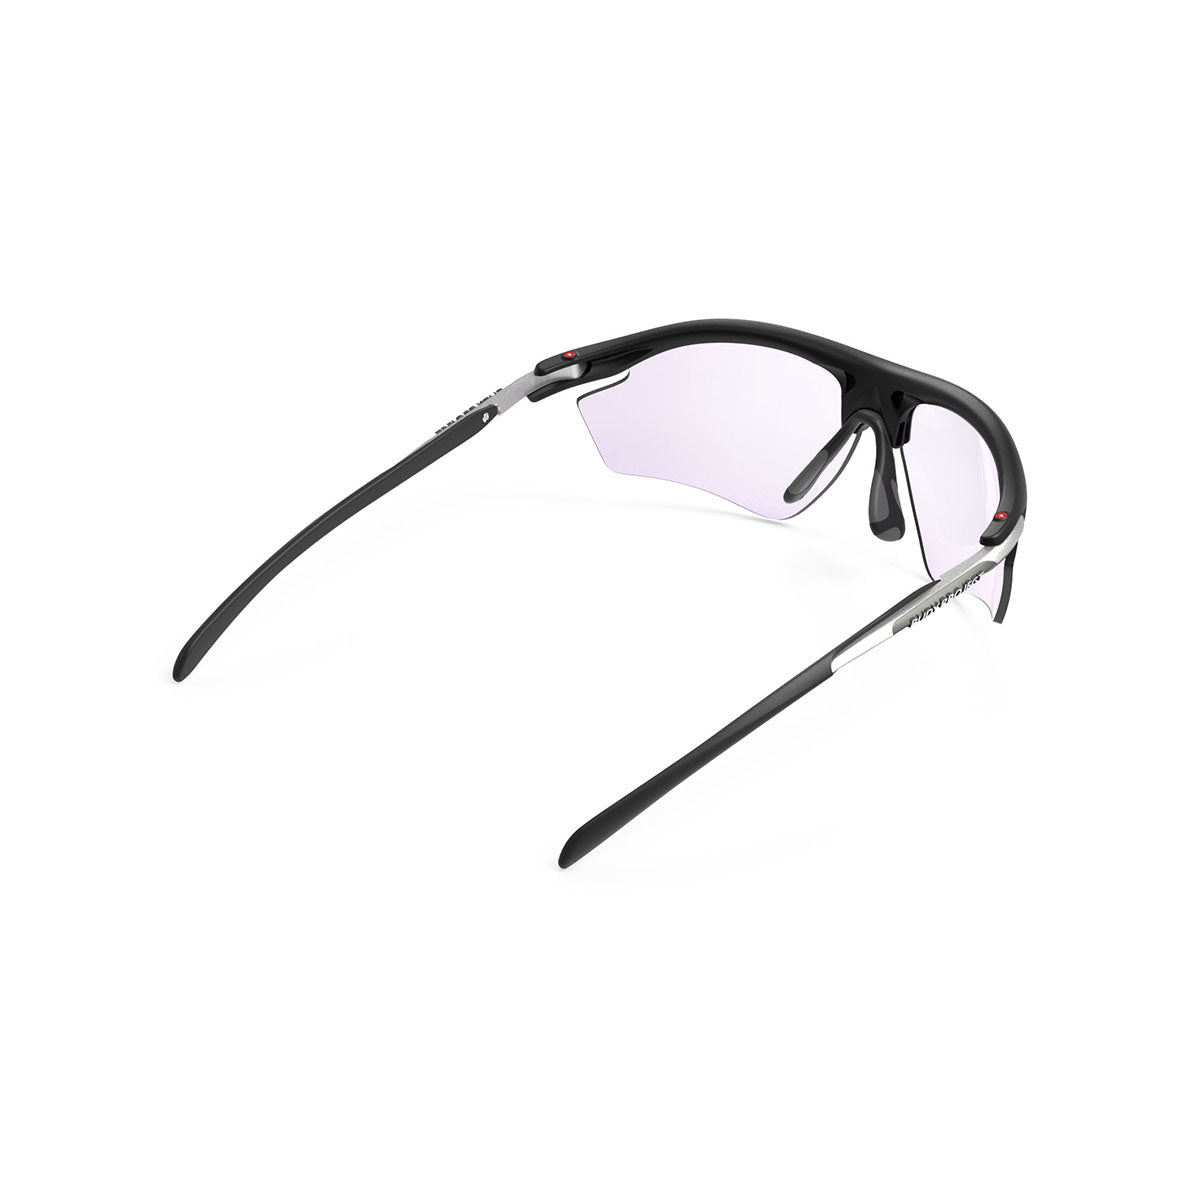 Rudy Project - Rydon Golf - frame color: Matte Black - lens color: ImpactX-2 Photochromic Laser Purple - photo angle: Top Back Angle Variant Hover Image